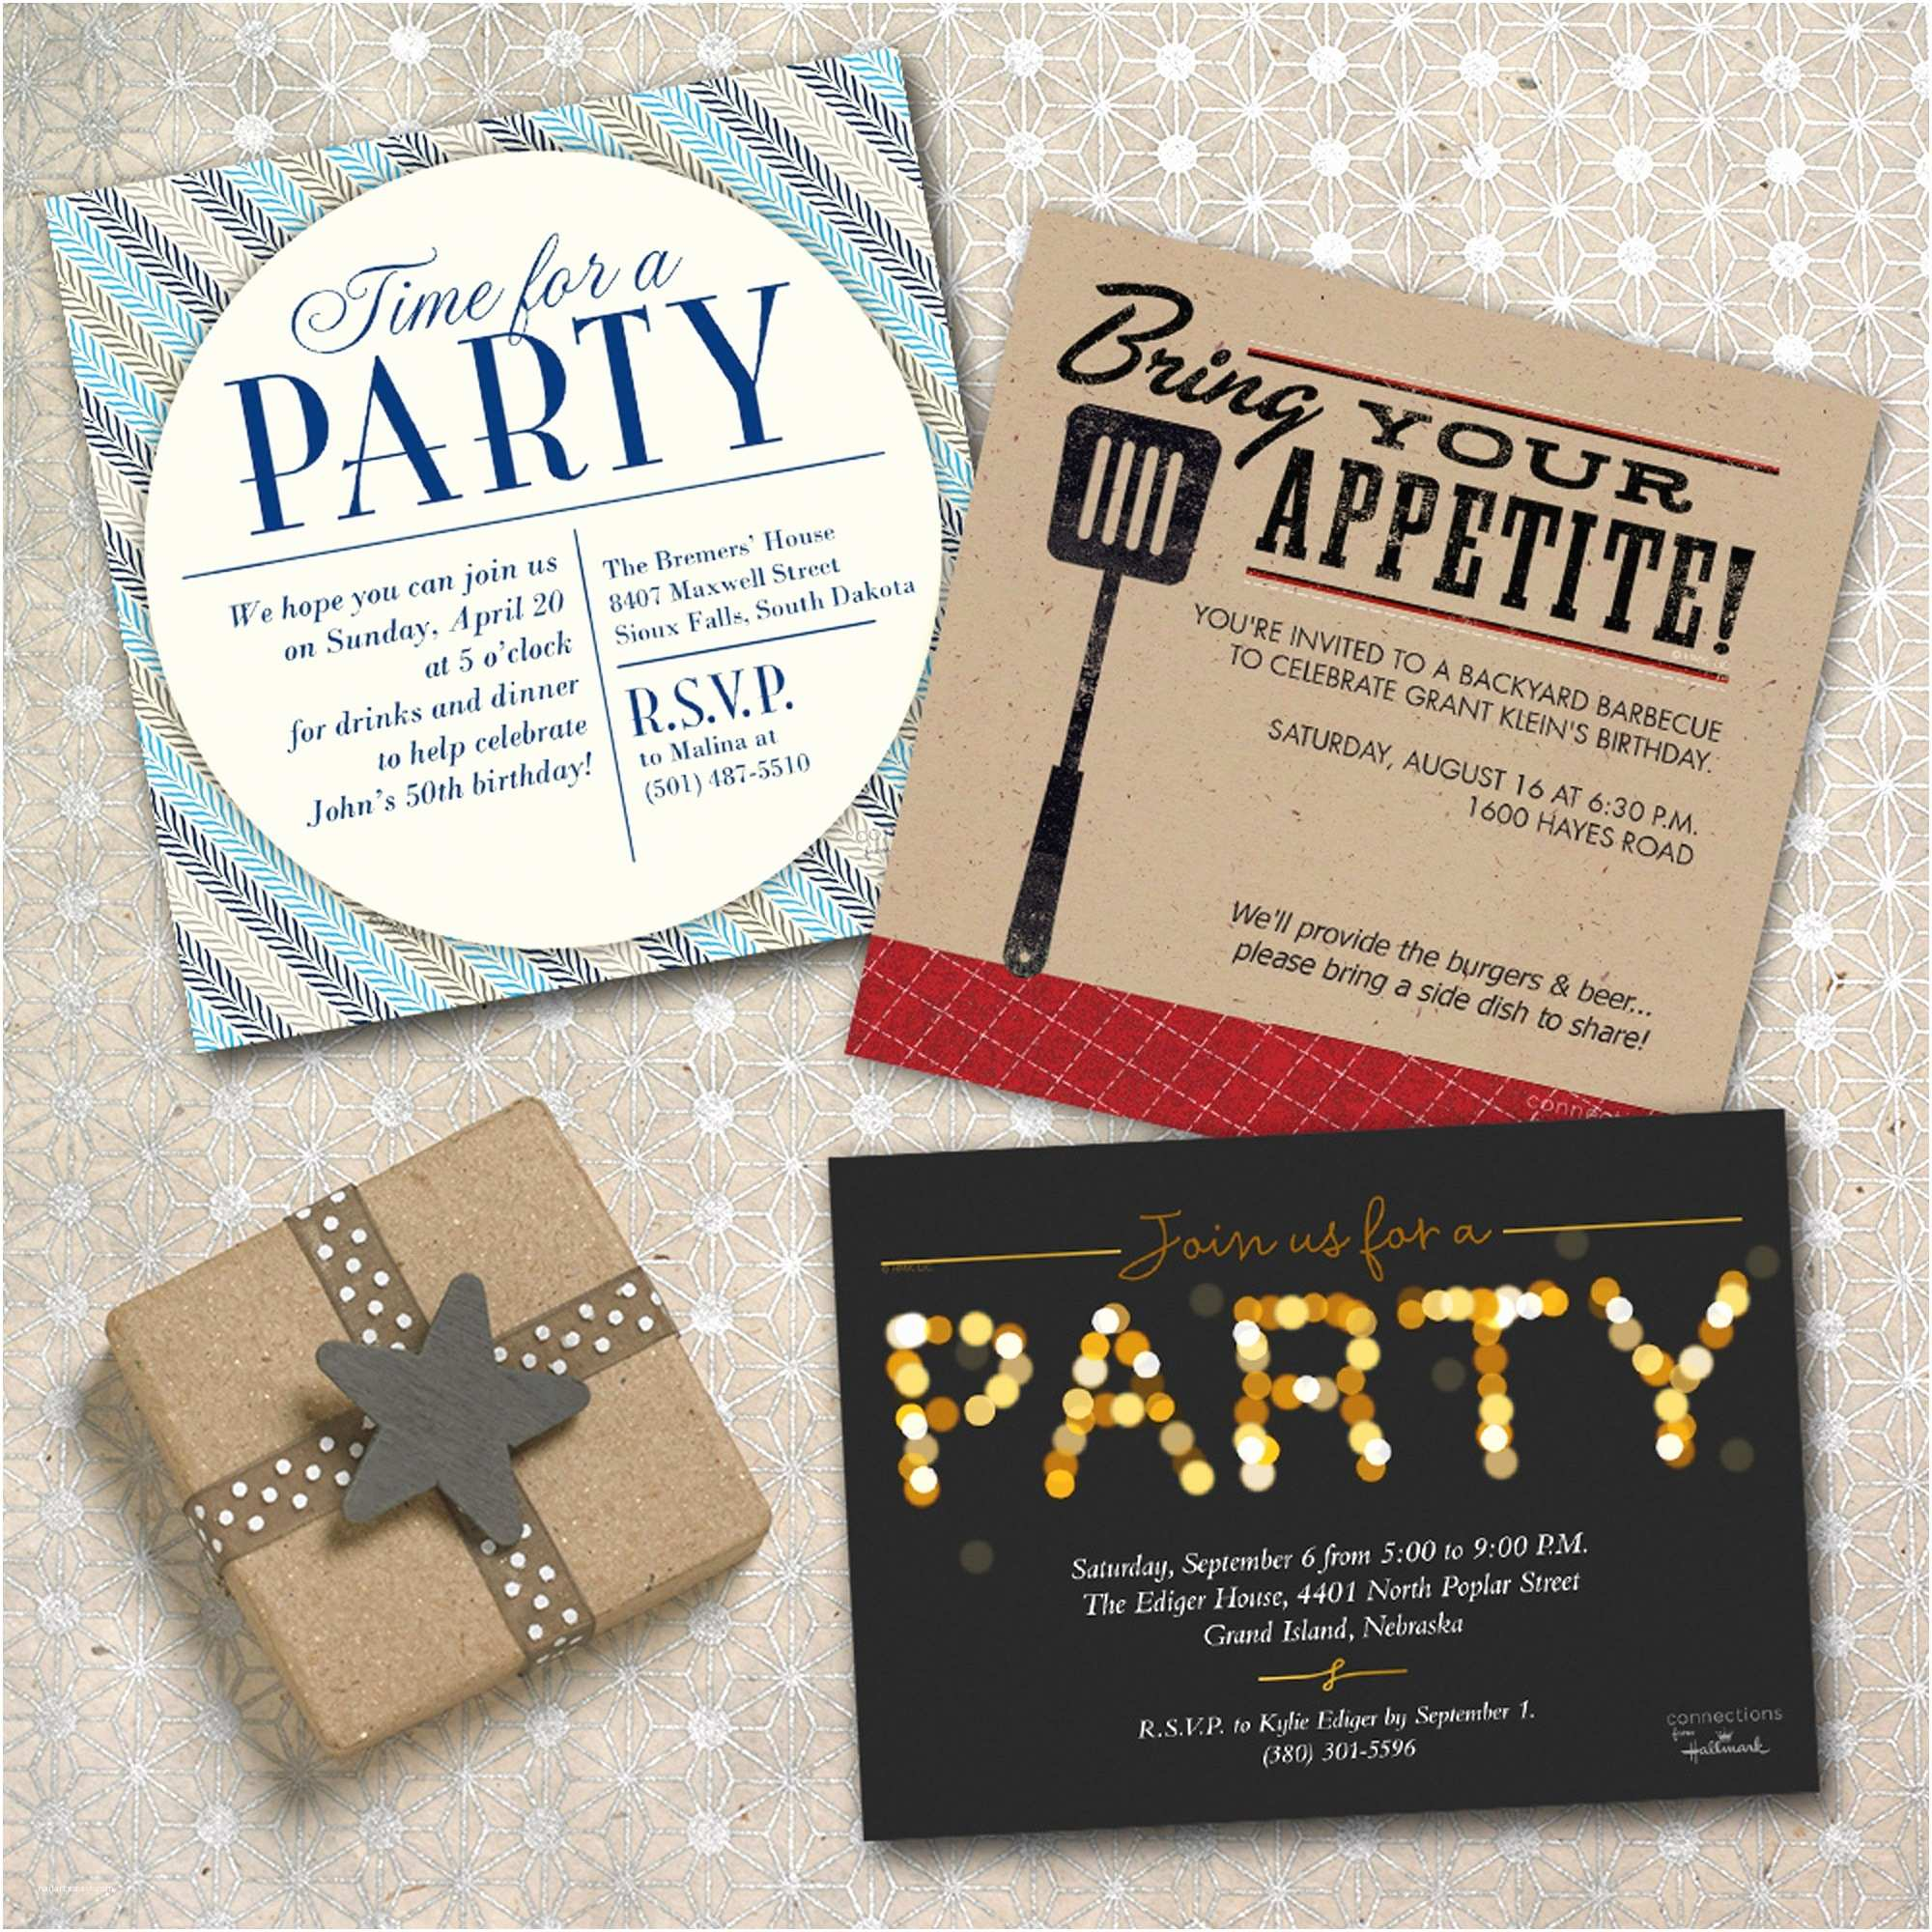 Cheap Bachelorette Party Invitations Cheap Bachelorette Party Invitations Awesome Funny